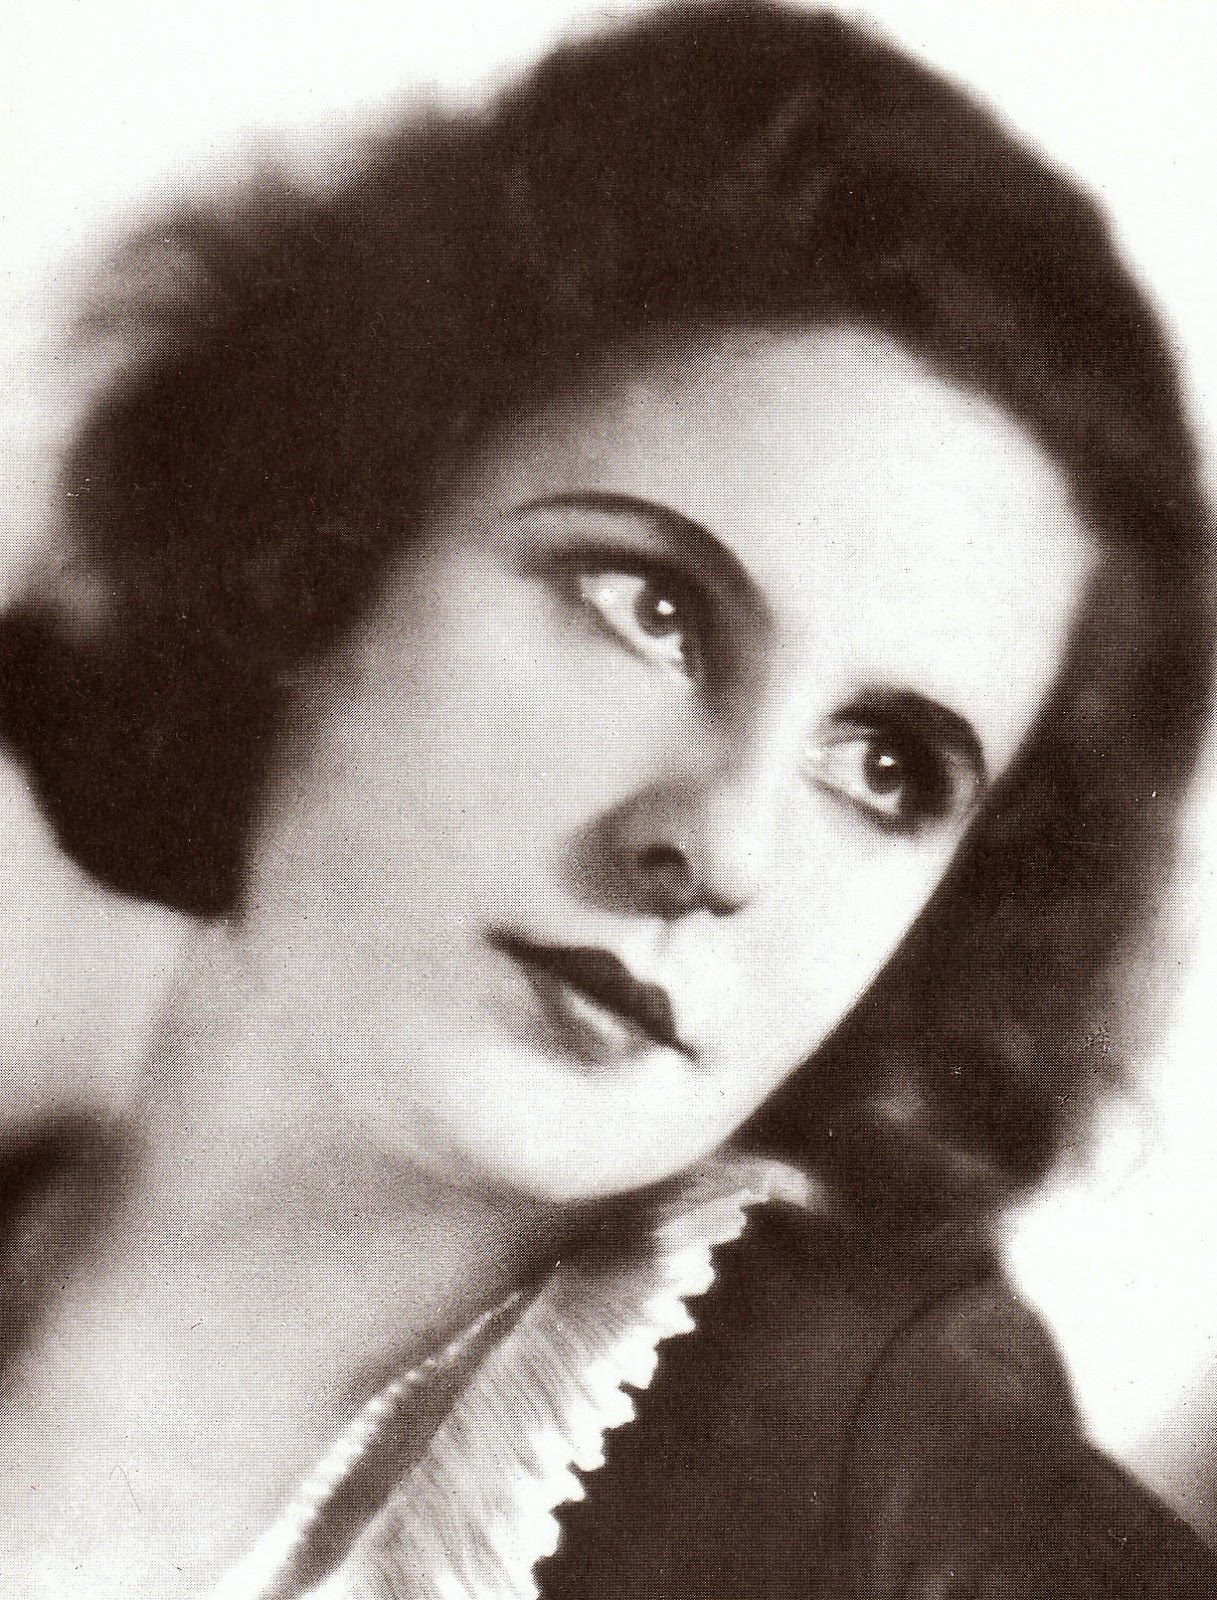 Leni Riefenstahl Biography